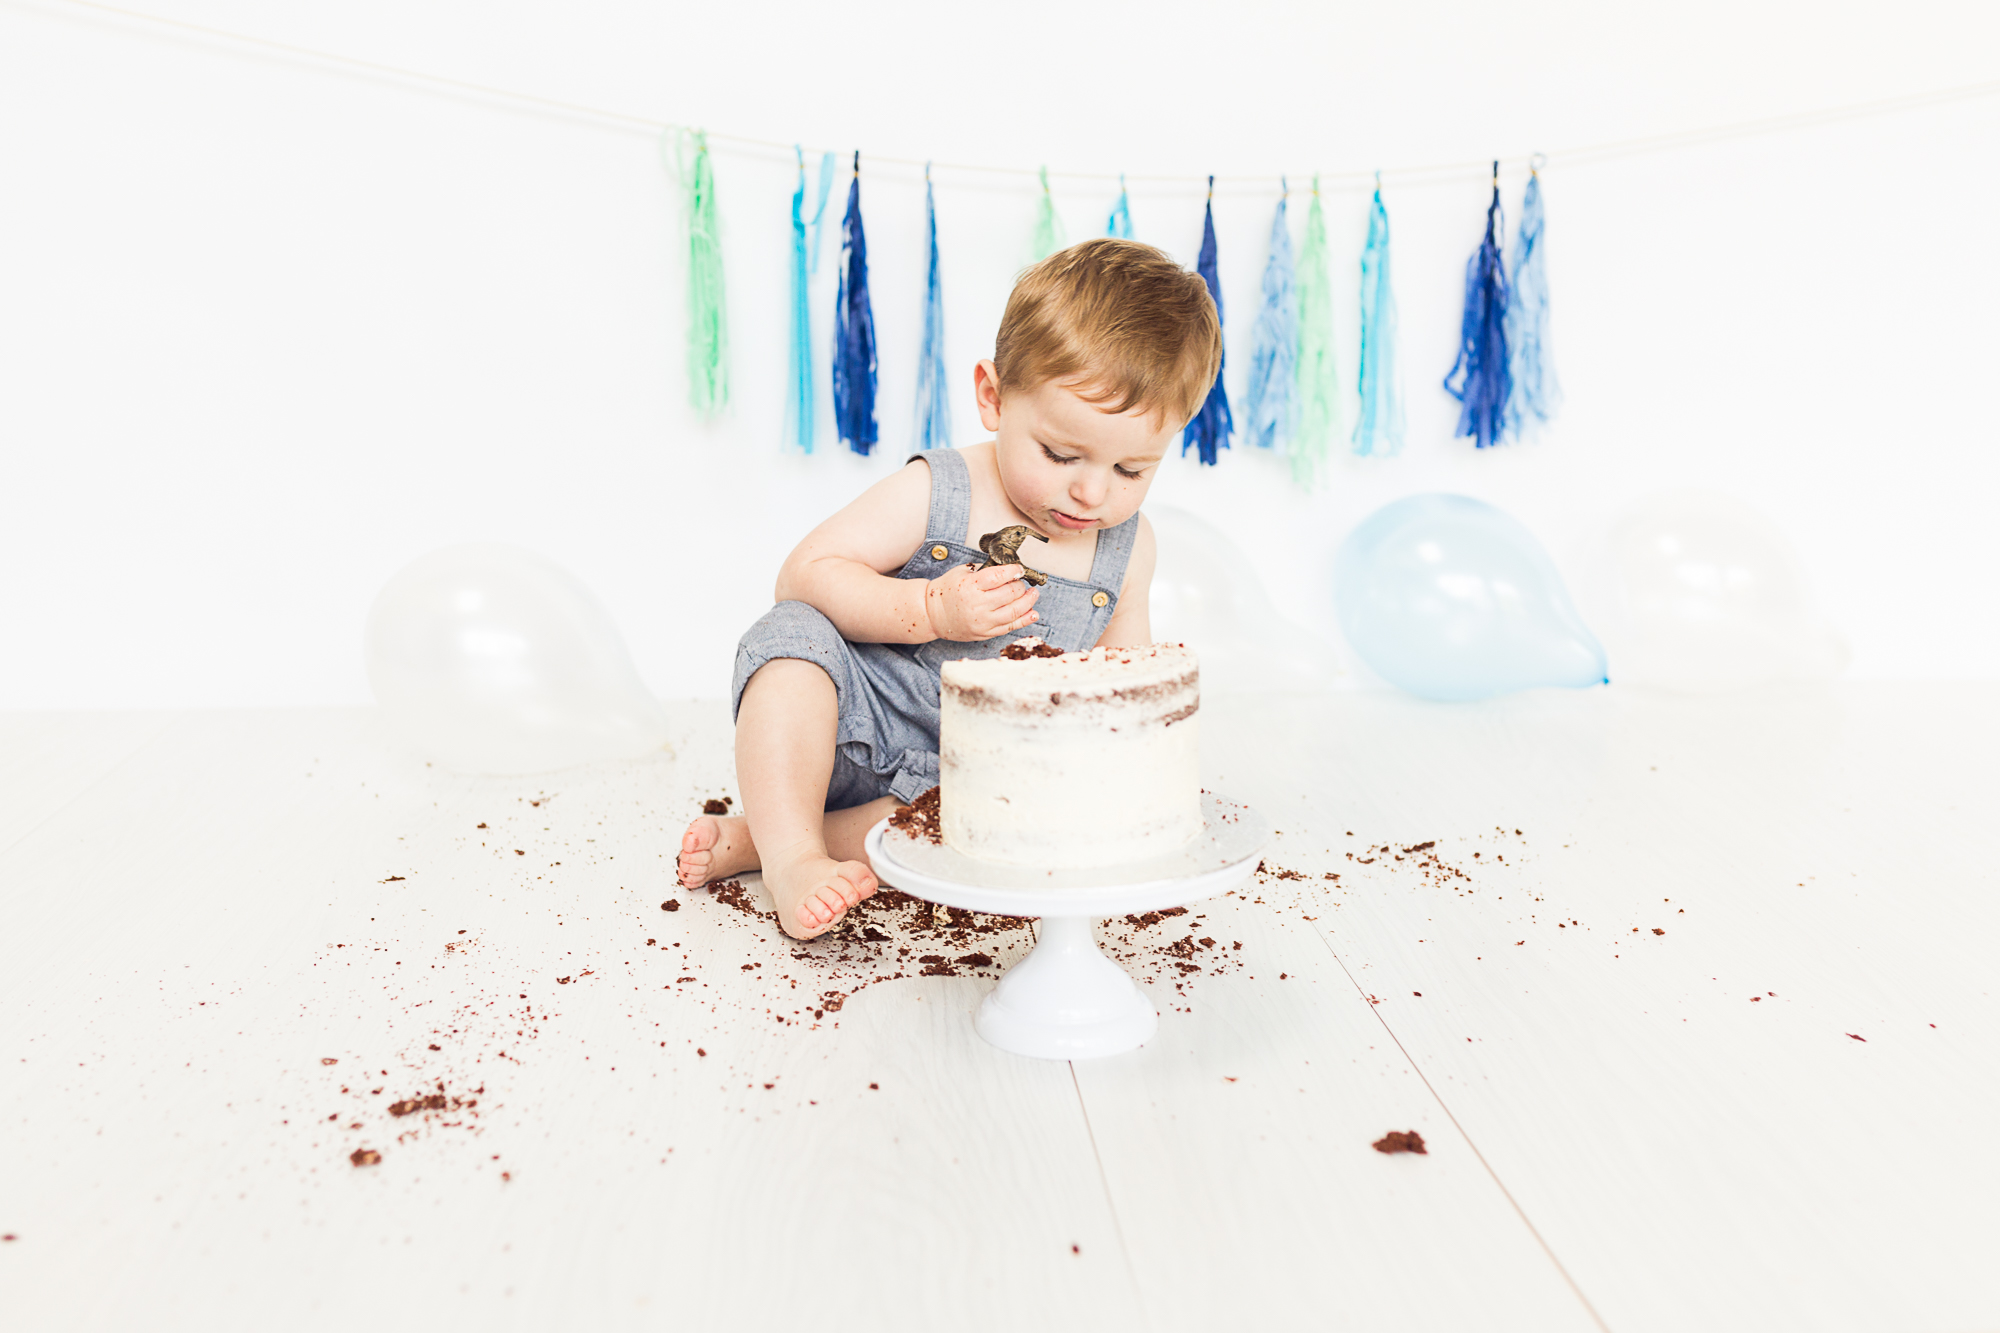 Cake smash – splash & Snuggle sessions – New to 3B&ME!